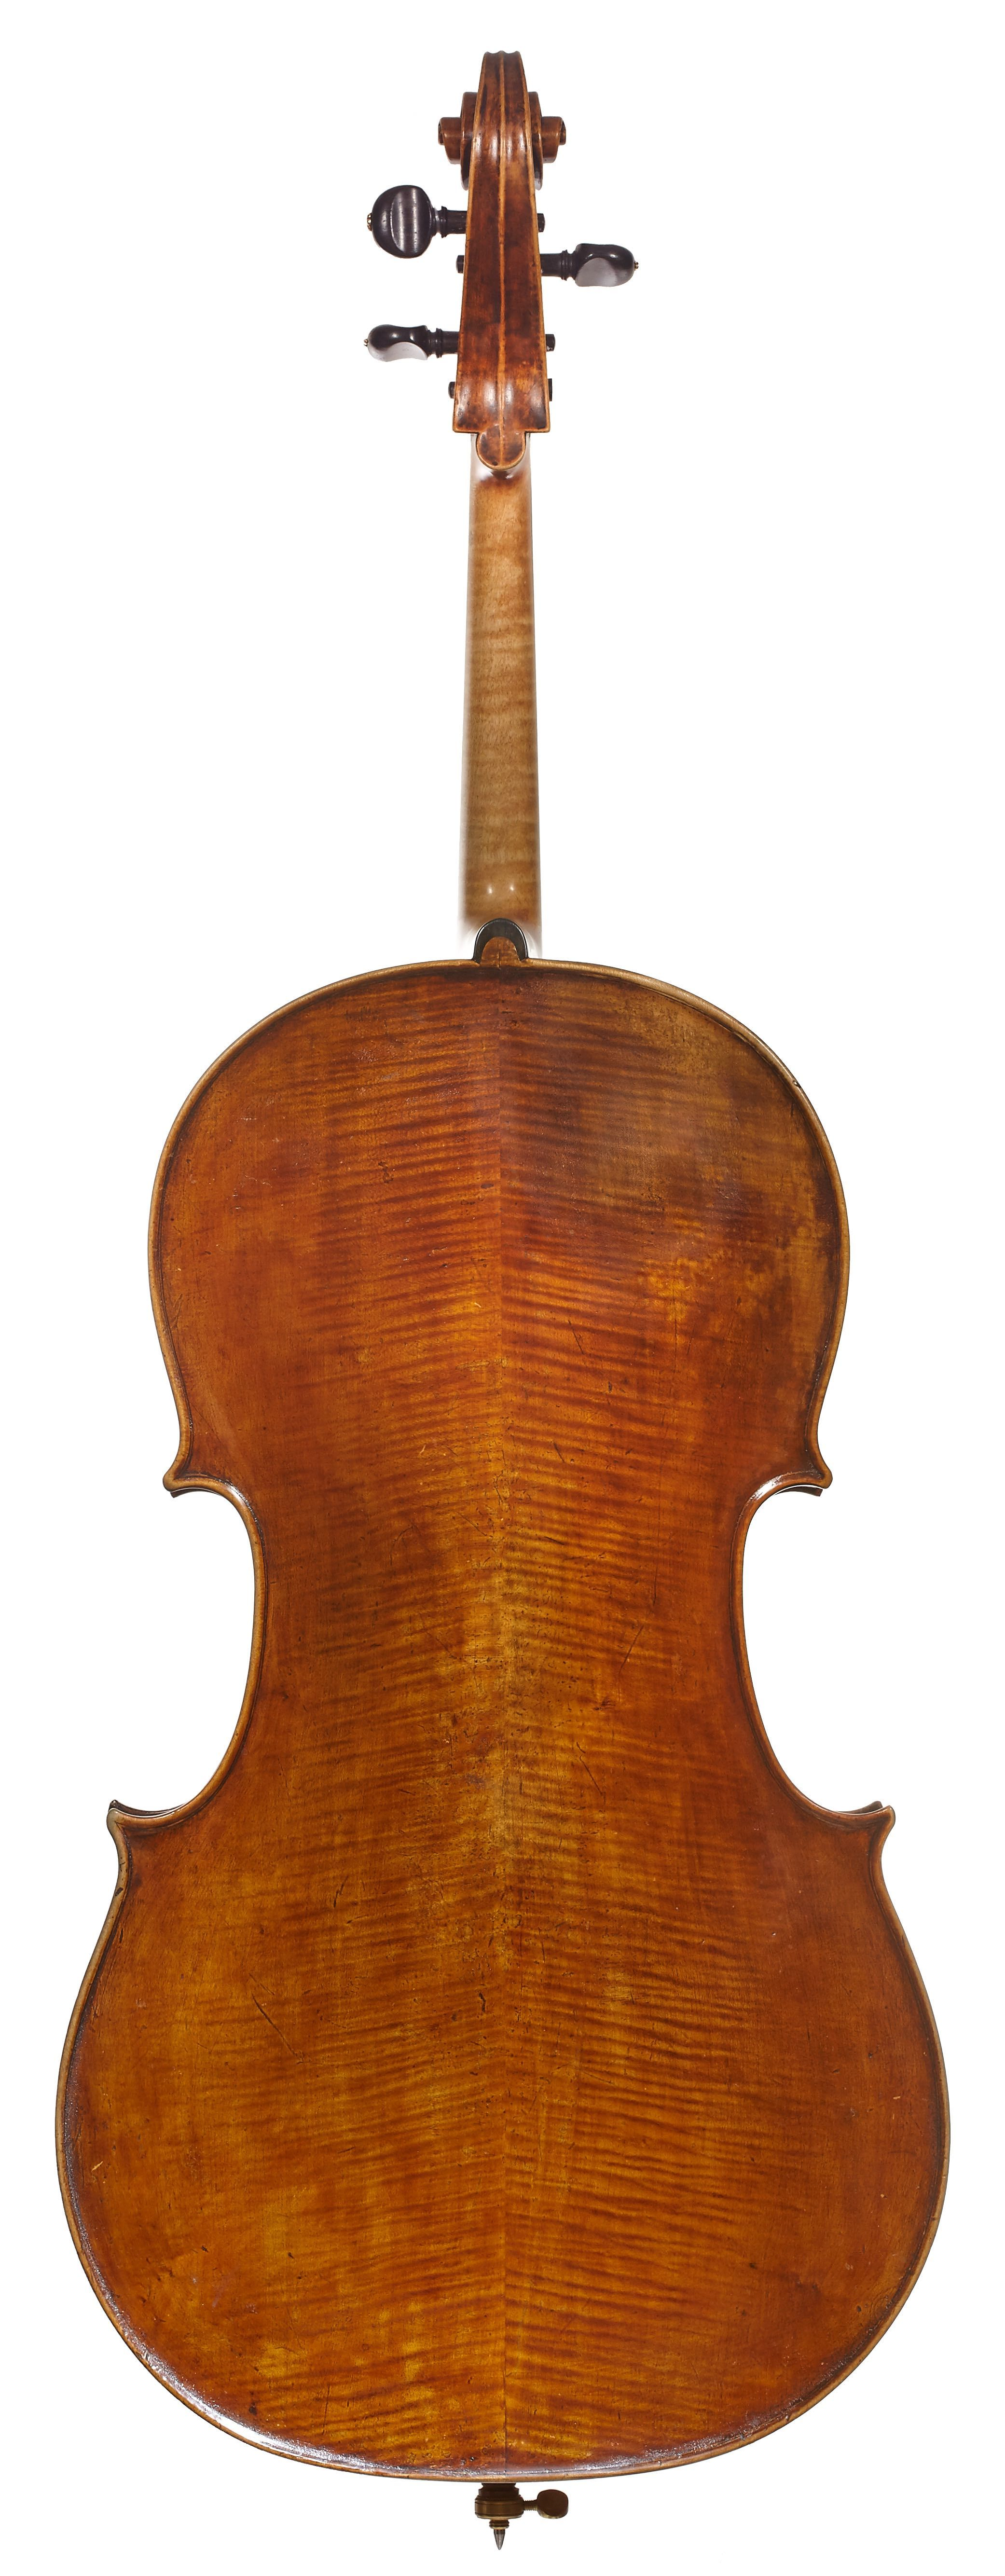 Image result for vincenzo mirighi cello